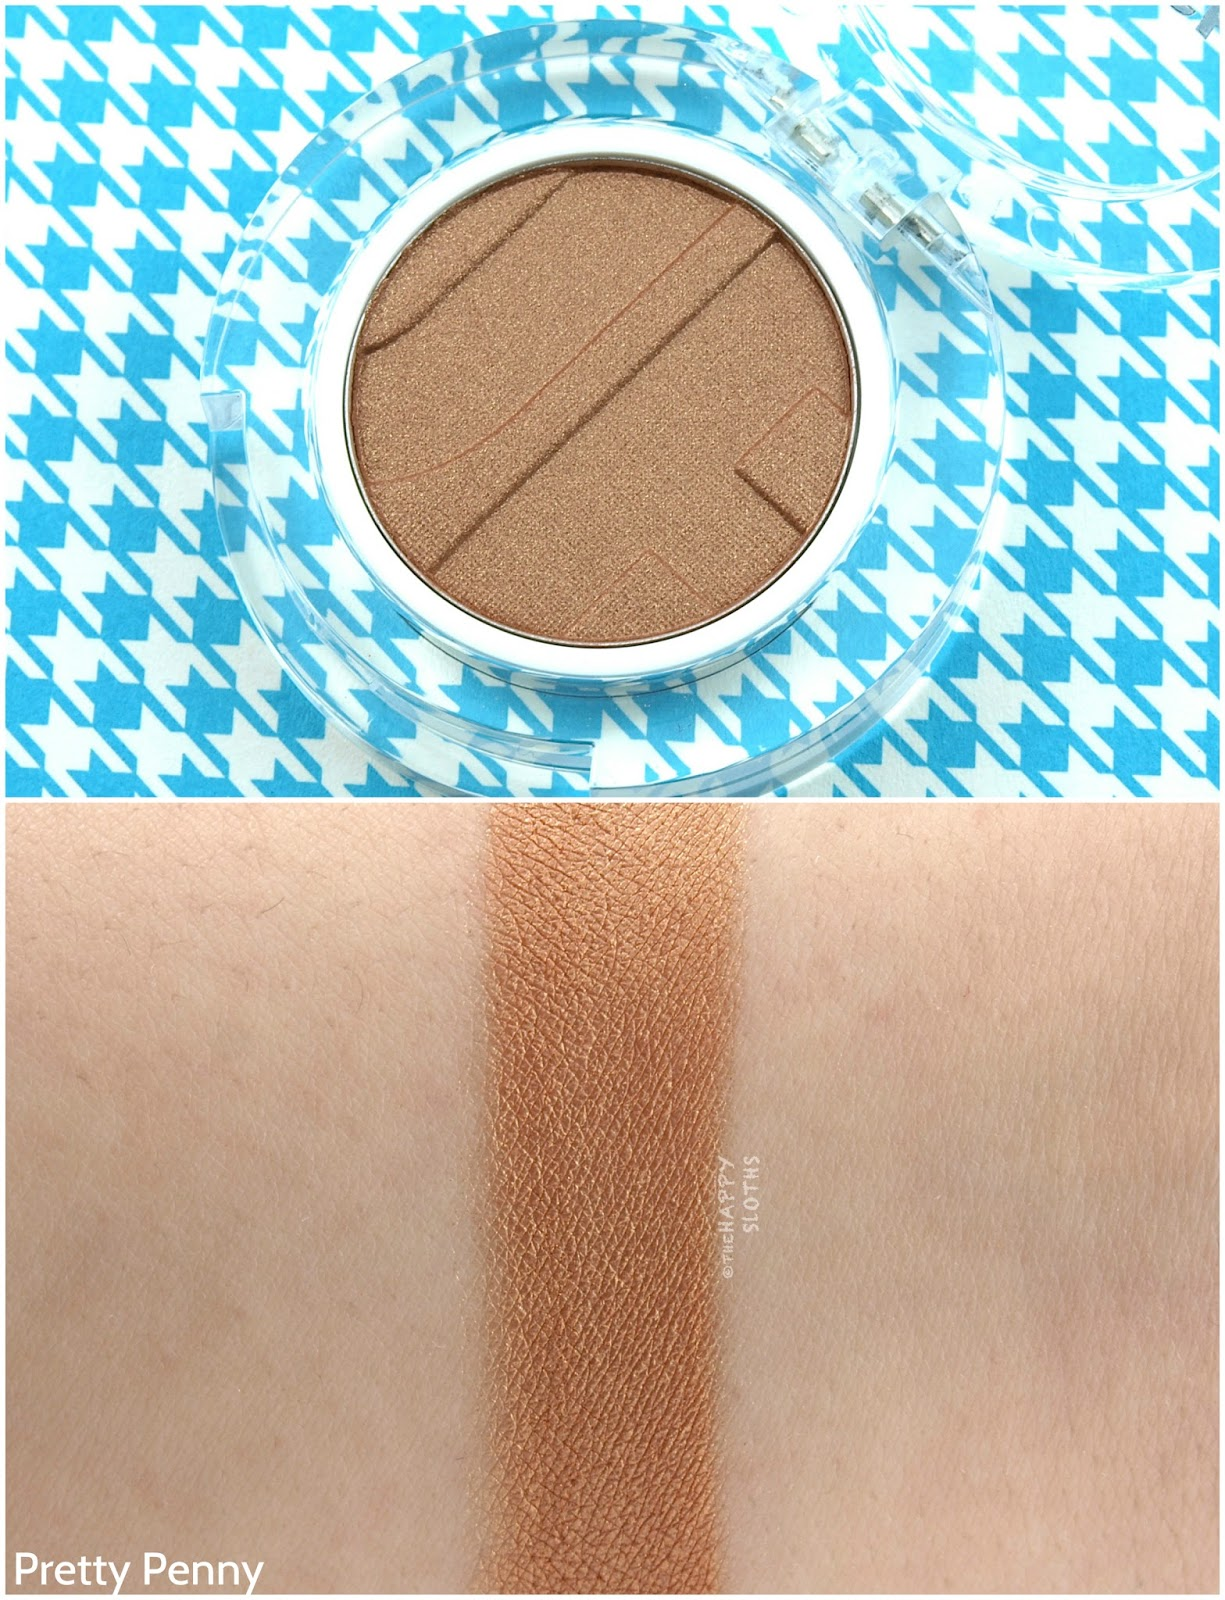 Joe Fresh Beauty Single Eyeshadow in Pretty Penny: Review and Swatches